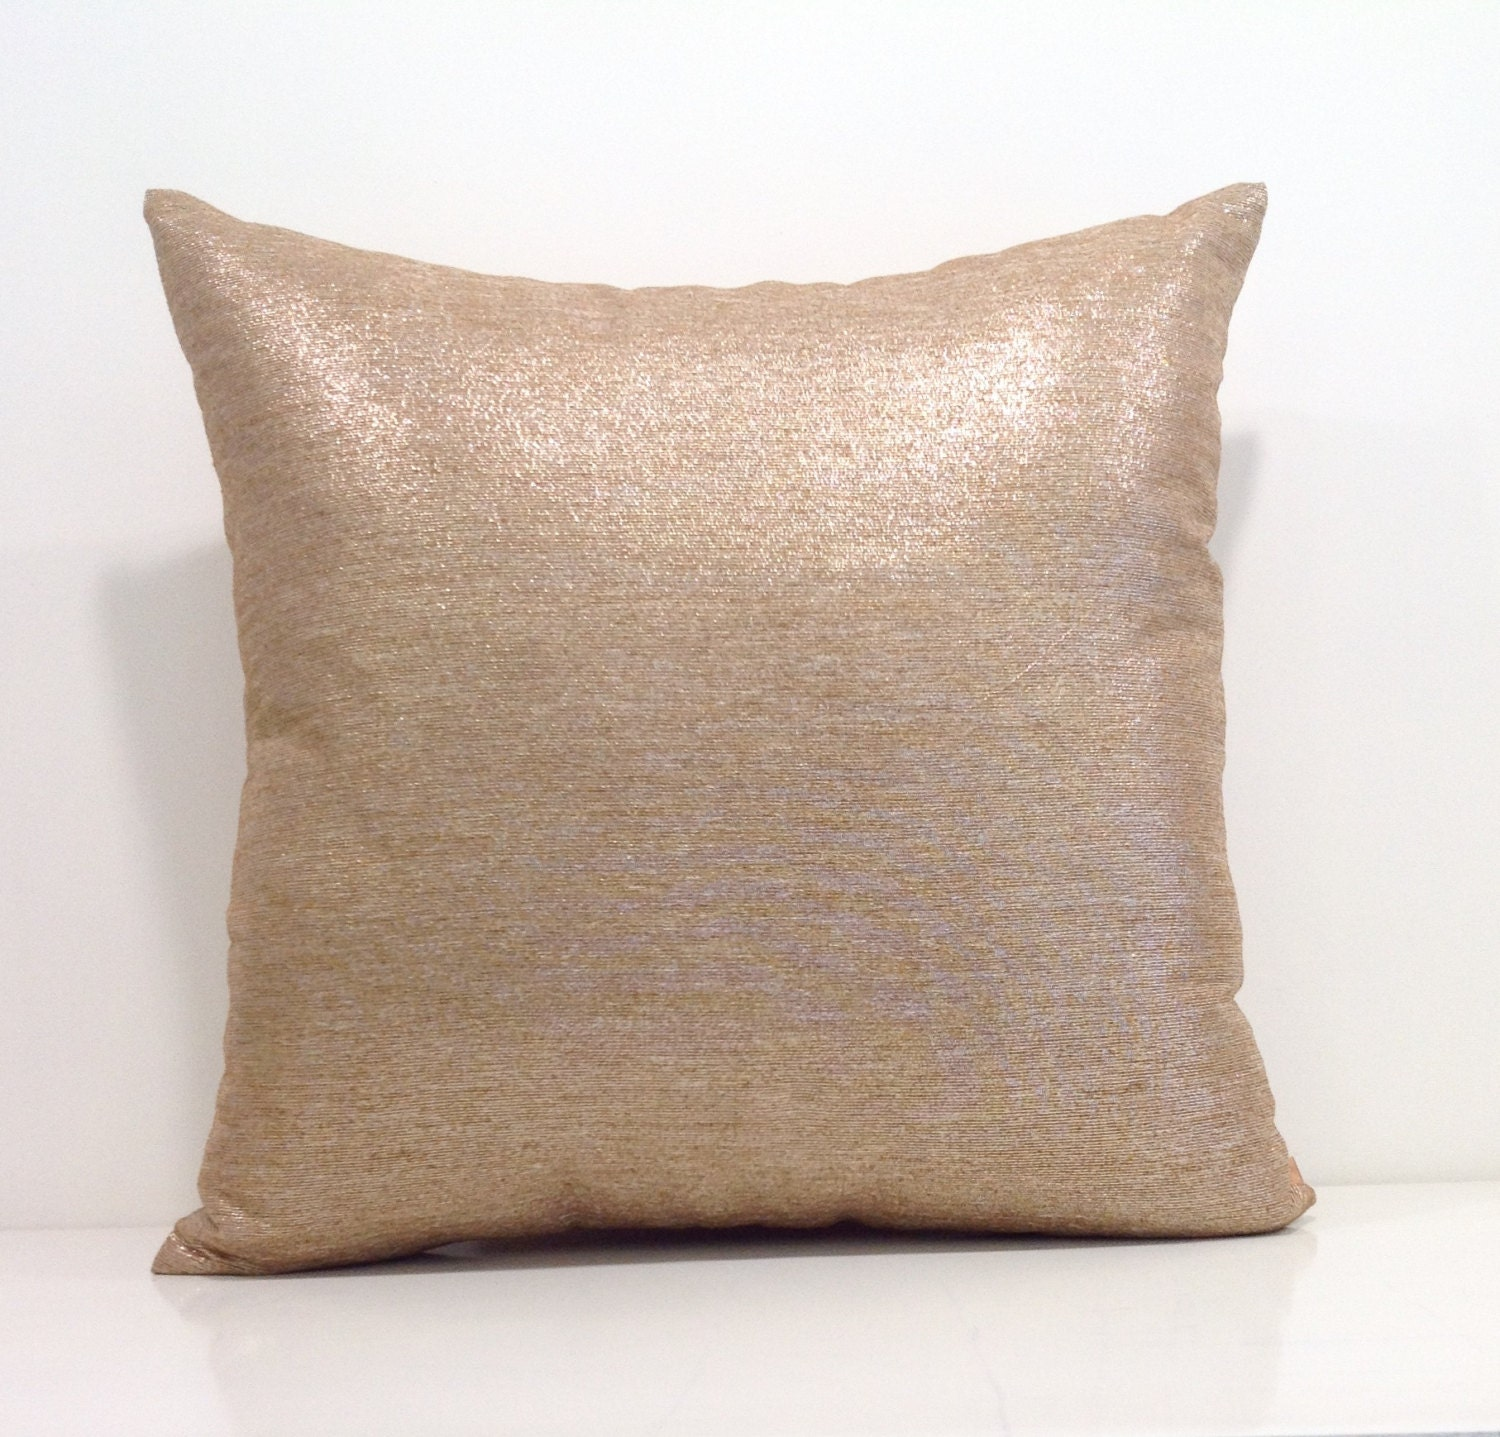 Throw Pillows Gif : Metallic Pillow Cover Gold Throw Pillow Covers 18x18 Pillow